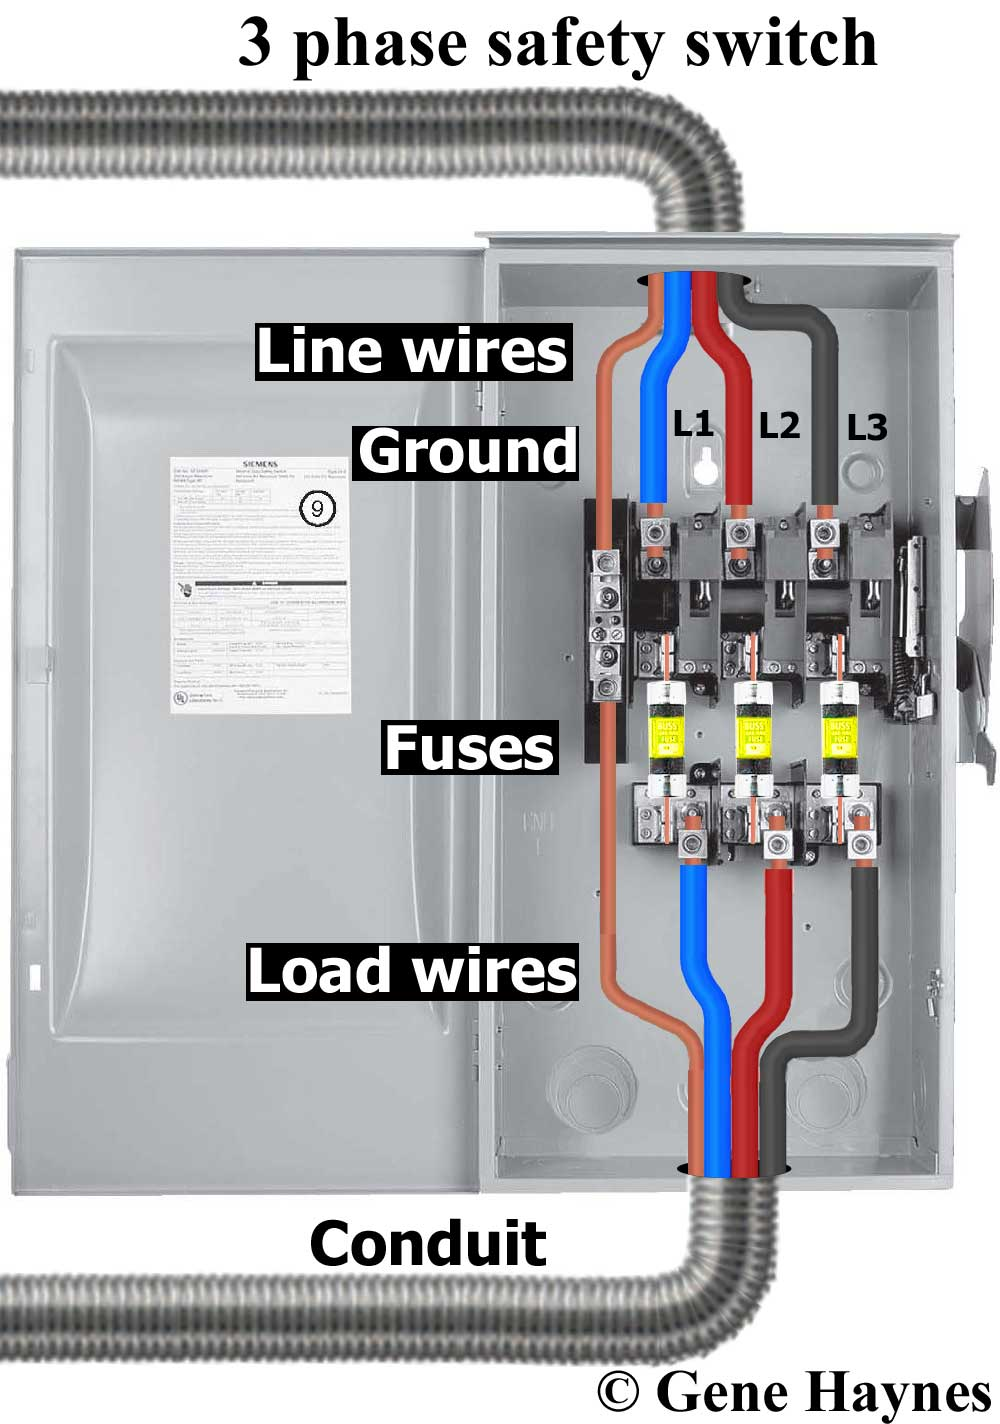 Example shows fusable/ this is called a 4-wire, but only 3 wires are  disconnected by safety switch. It is OK to have breaker and fuse on same  line.